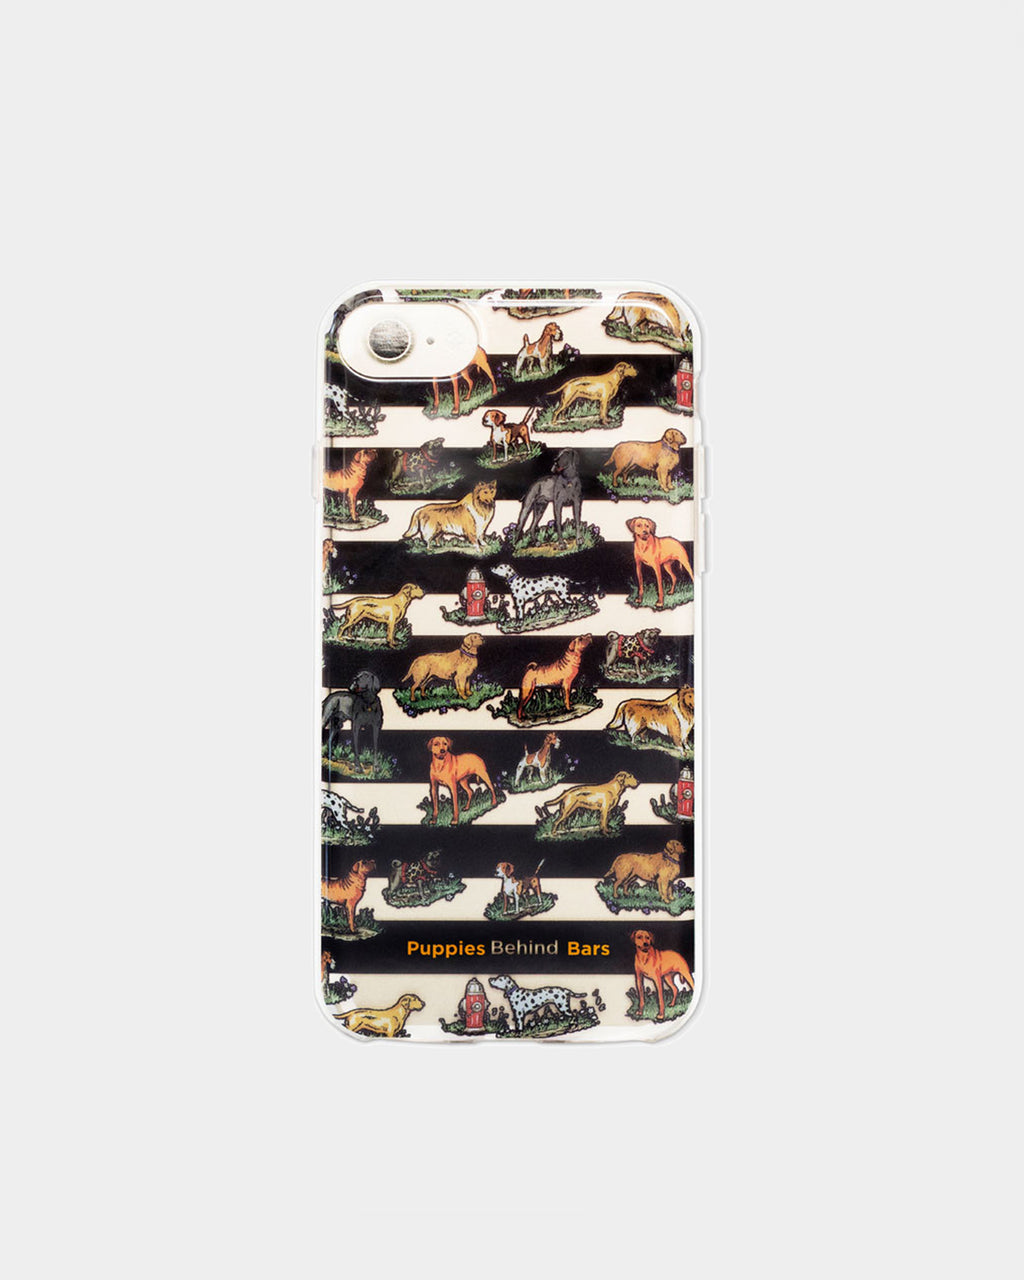 PBPIPHO - PUPPIES BEHIND BARS iPHONE 7 CASE - accessories - stationary - In a one of a kind print created for Puppies Behind Bars, this case is suited for the iPhone 7. All proceeds will be donated to Puppies Behind Bars, a non-profit that trains inmates to raise service dogs for wounded war veterans and explosive detection canines for law enforcement.